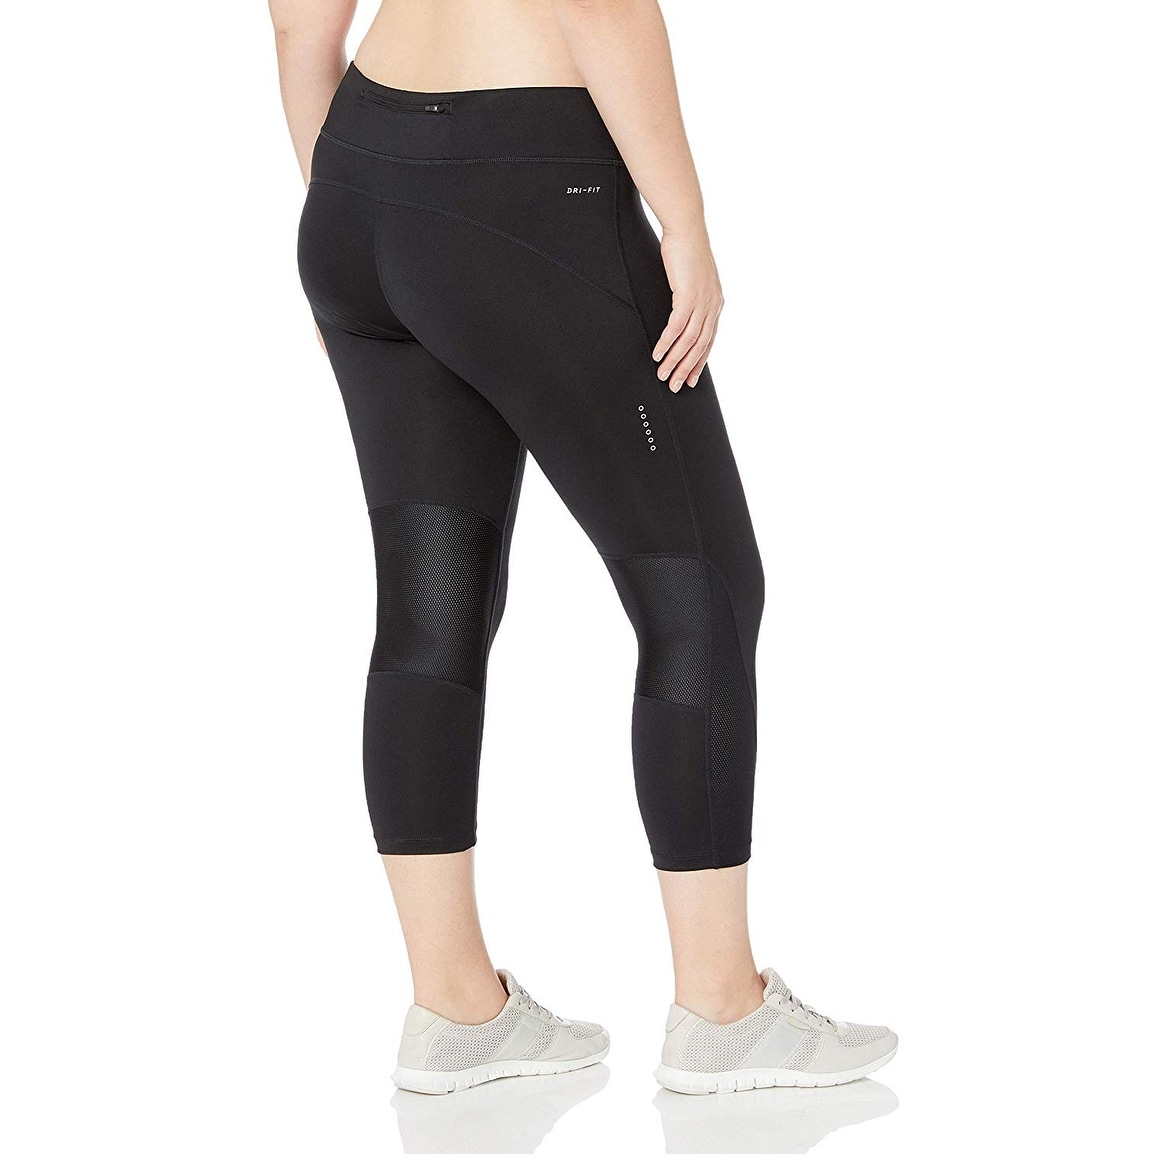 0e2f305c351075 Shop Nike Women's Plus Size Power Compression Cropped Leggings Black Size 3  Extra Large - XXX-Large - On Sale - Free Shipping Today - Overstock -  27884154